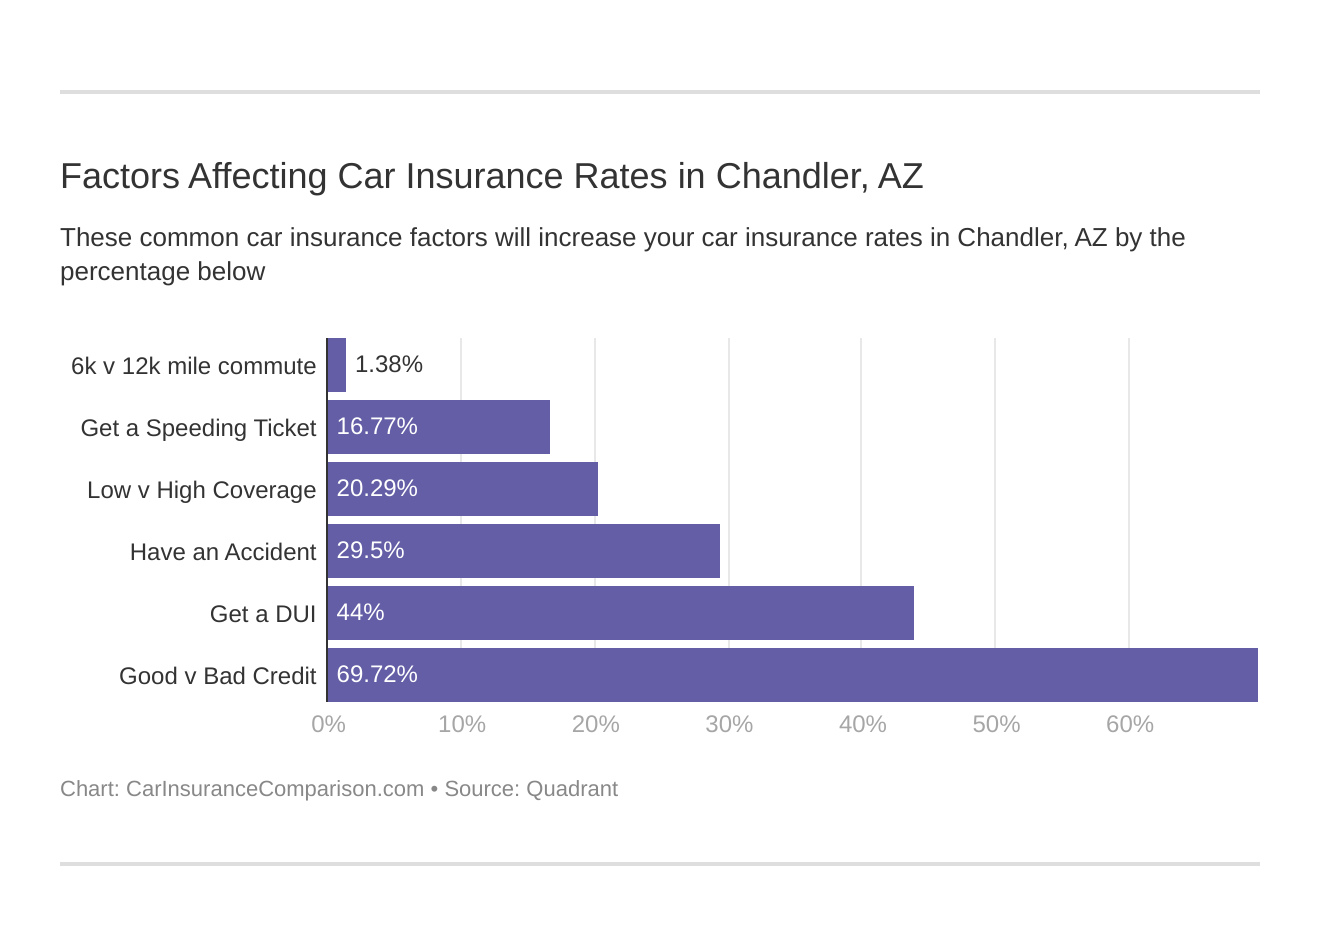 Factors Affecting Car Insurance Rates in Chandler, AZ